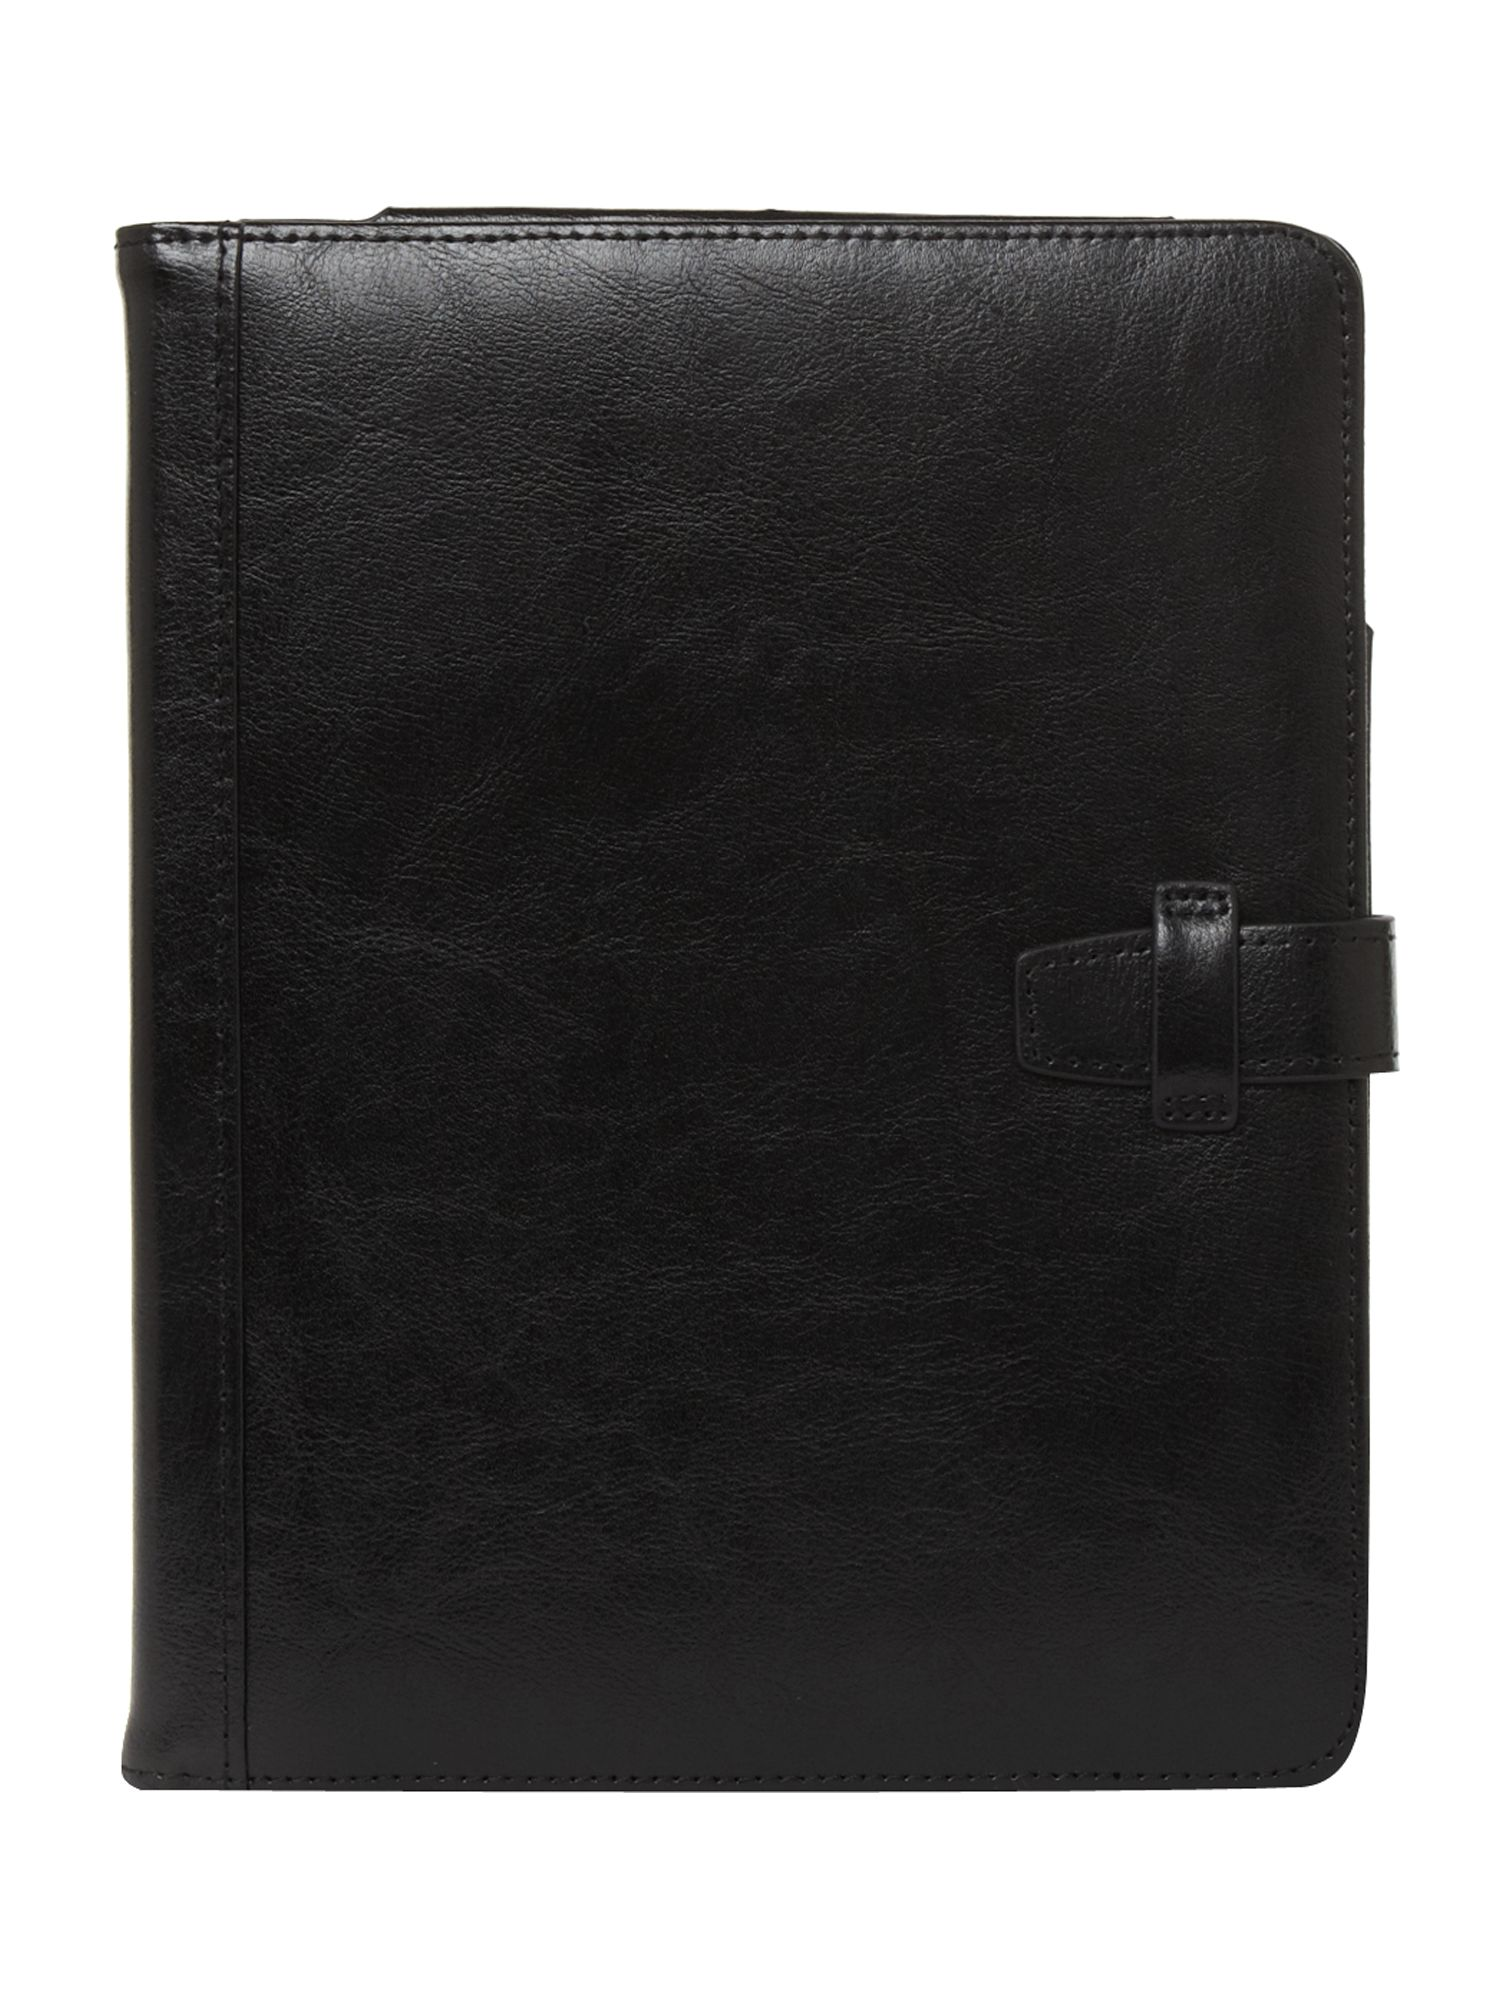 Black Leather Ipad 2 Case